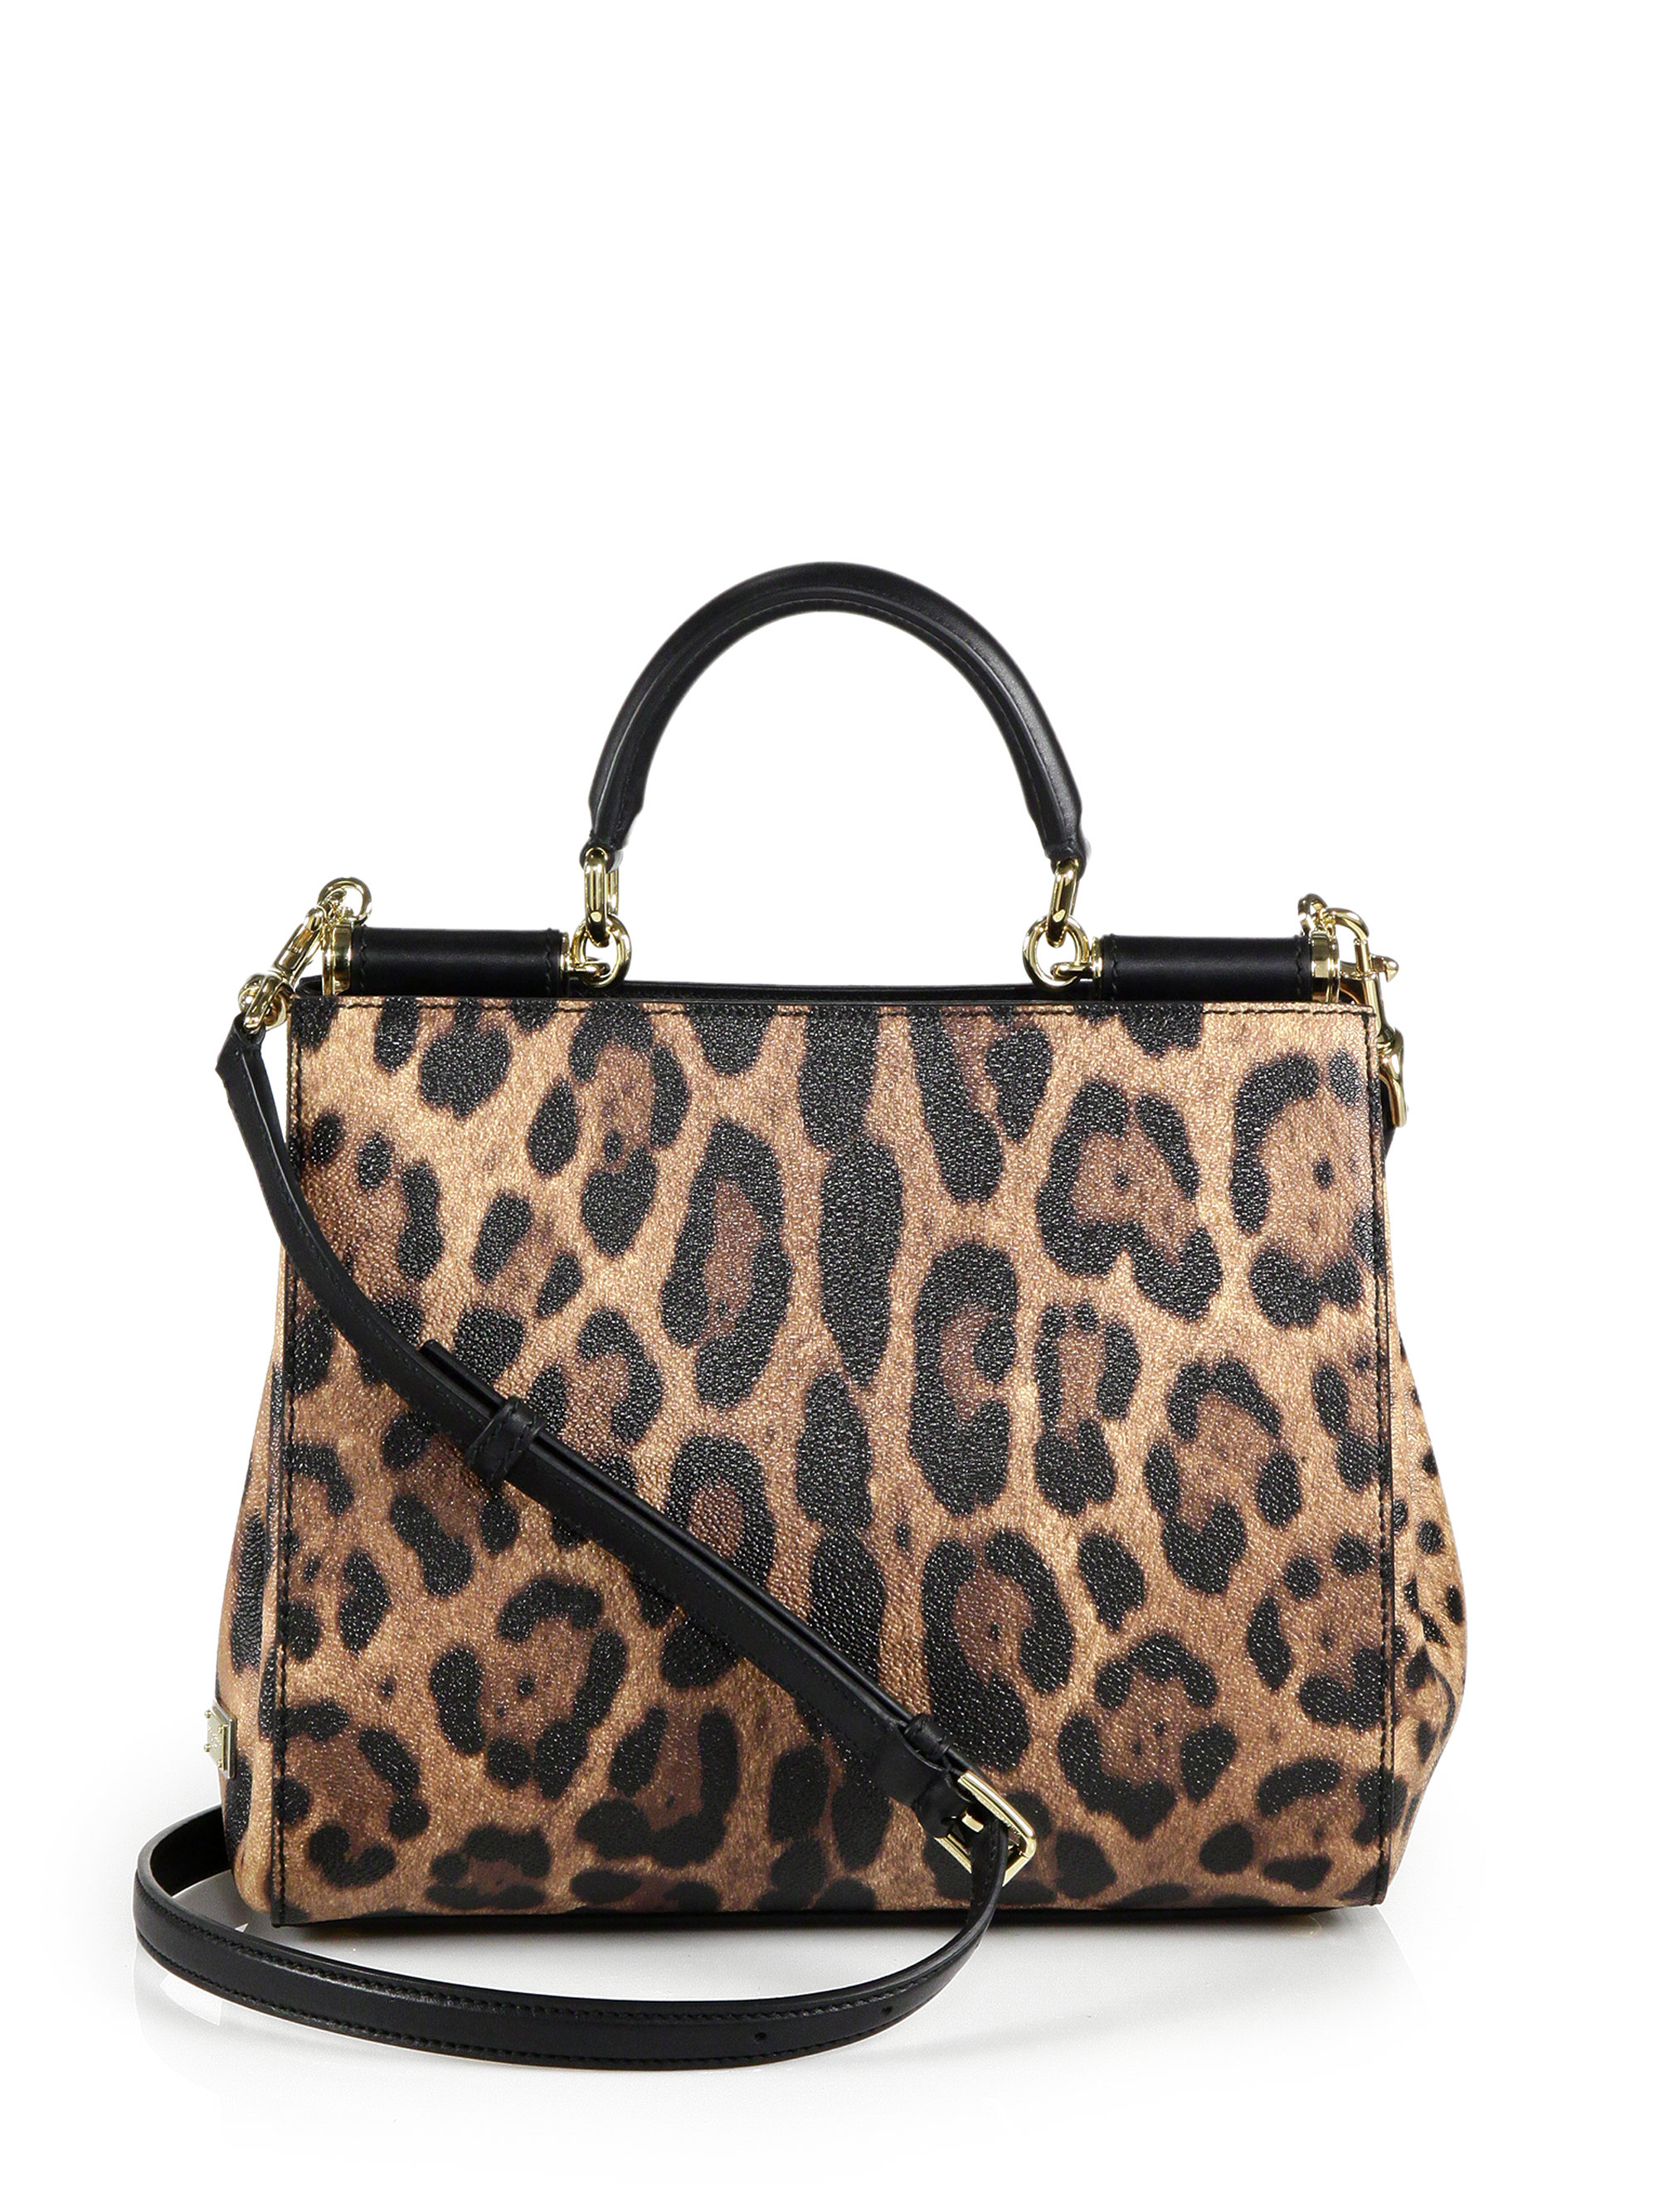 Lyst - Dolce   Gabbana Sicily Medium Leopard-print Textured Leather ... 65be5fc8ae